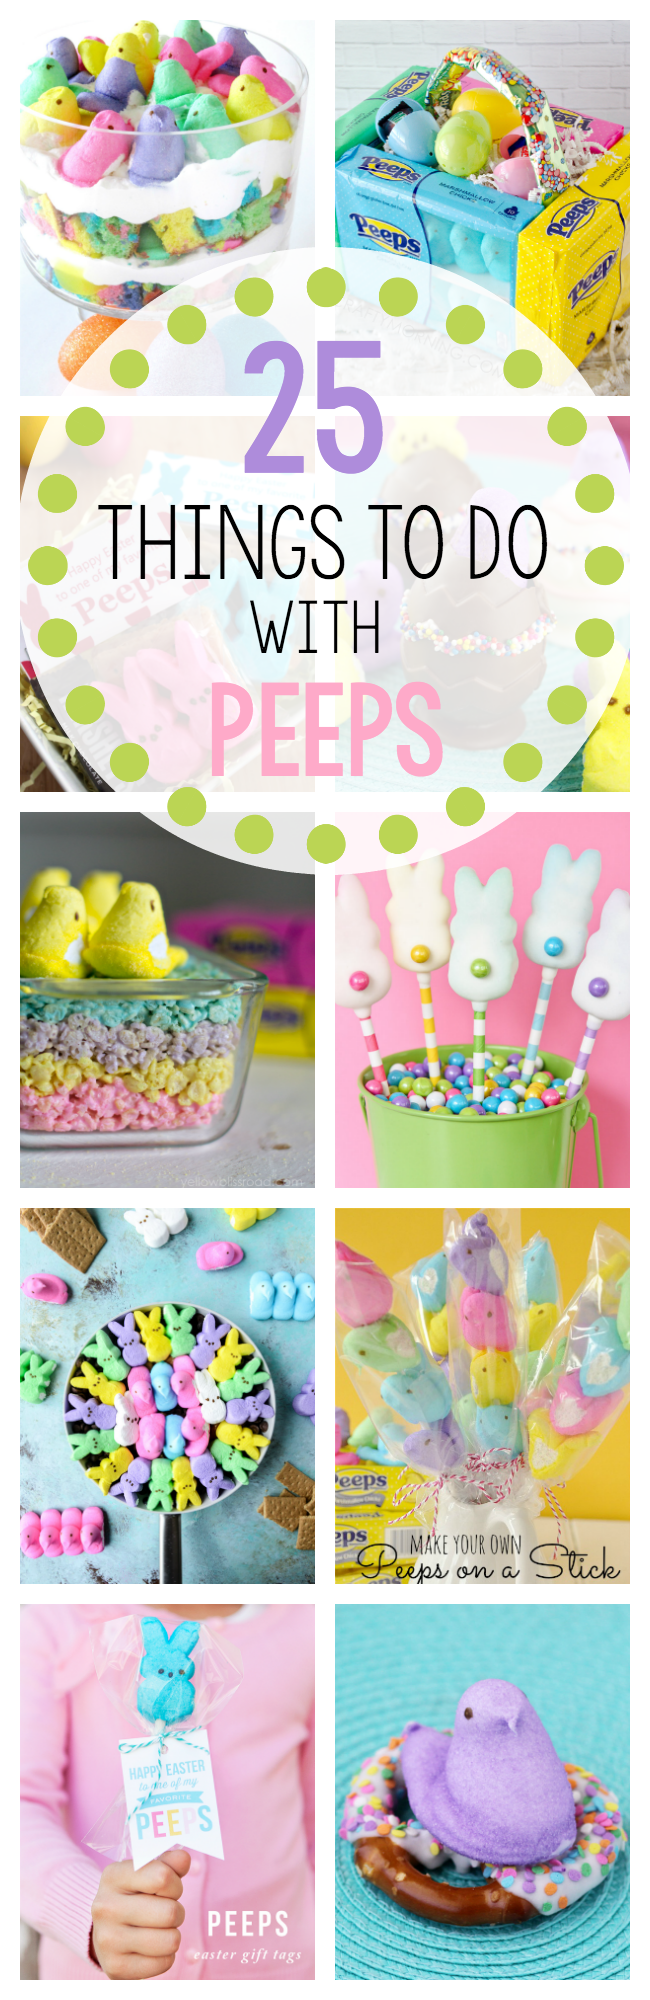 25 Fun Peeps Ideas